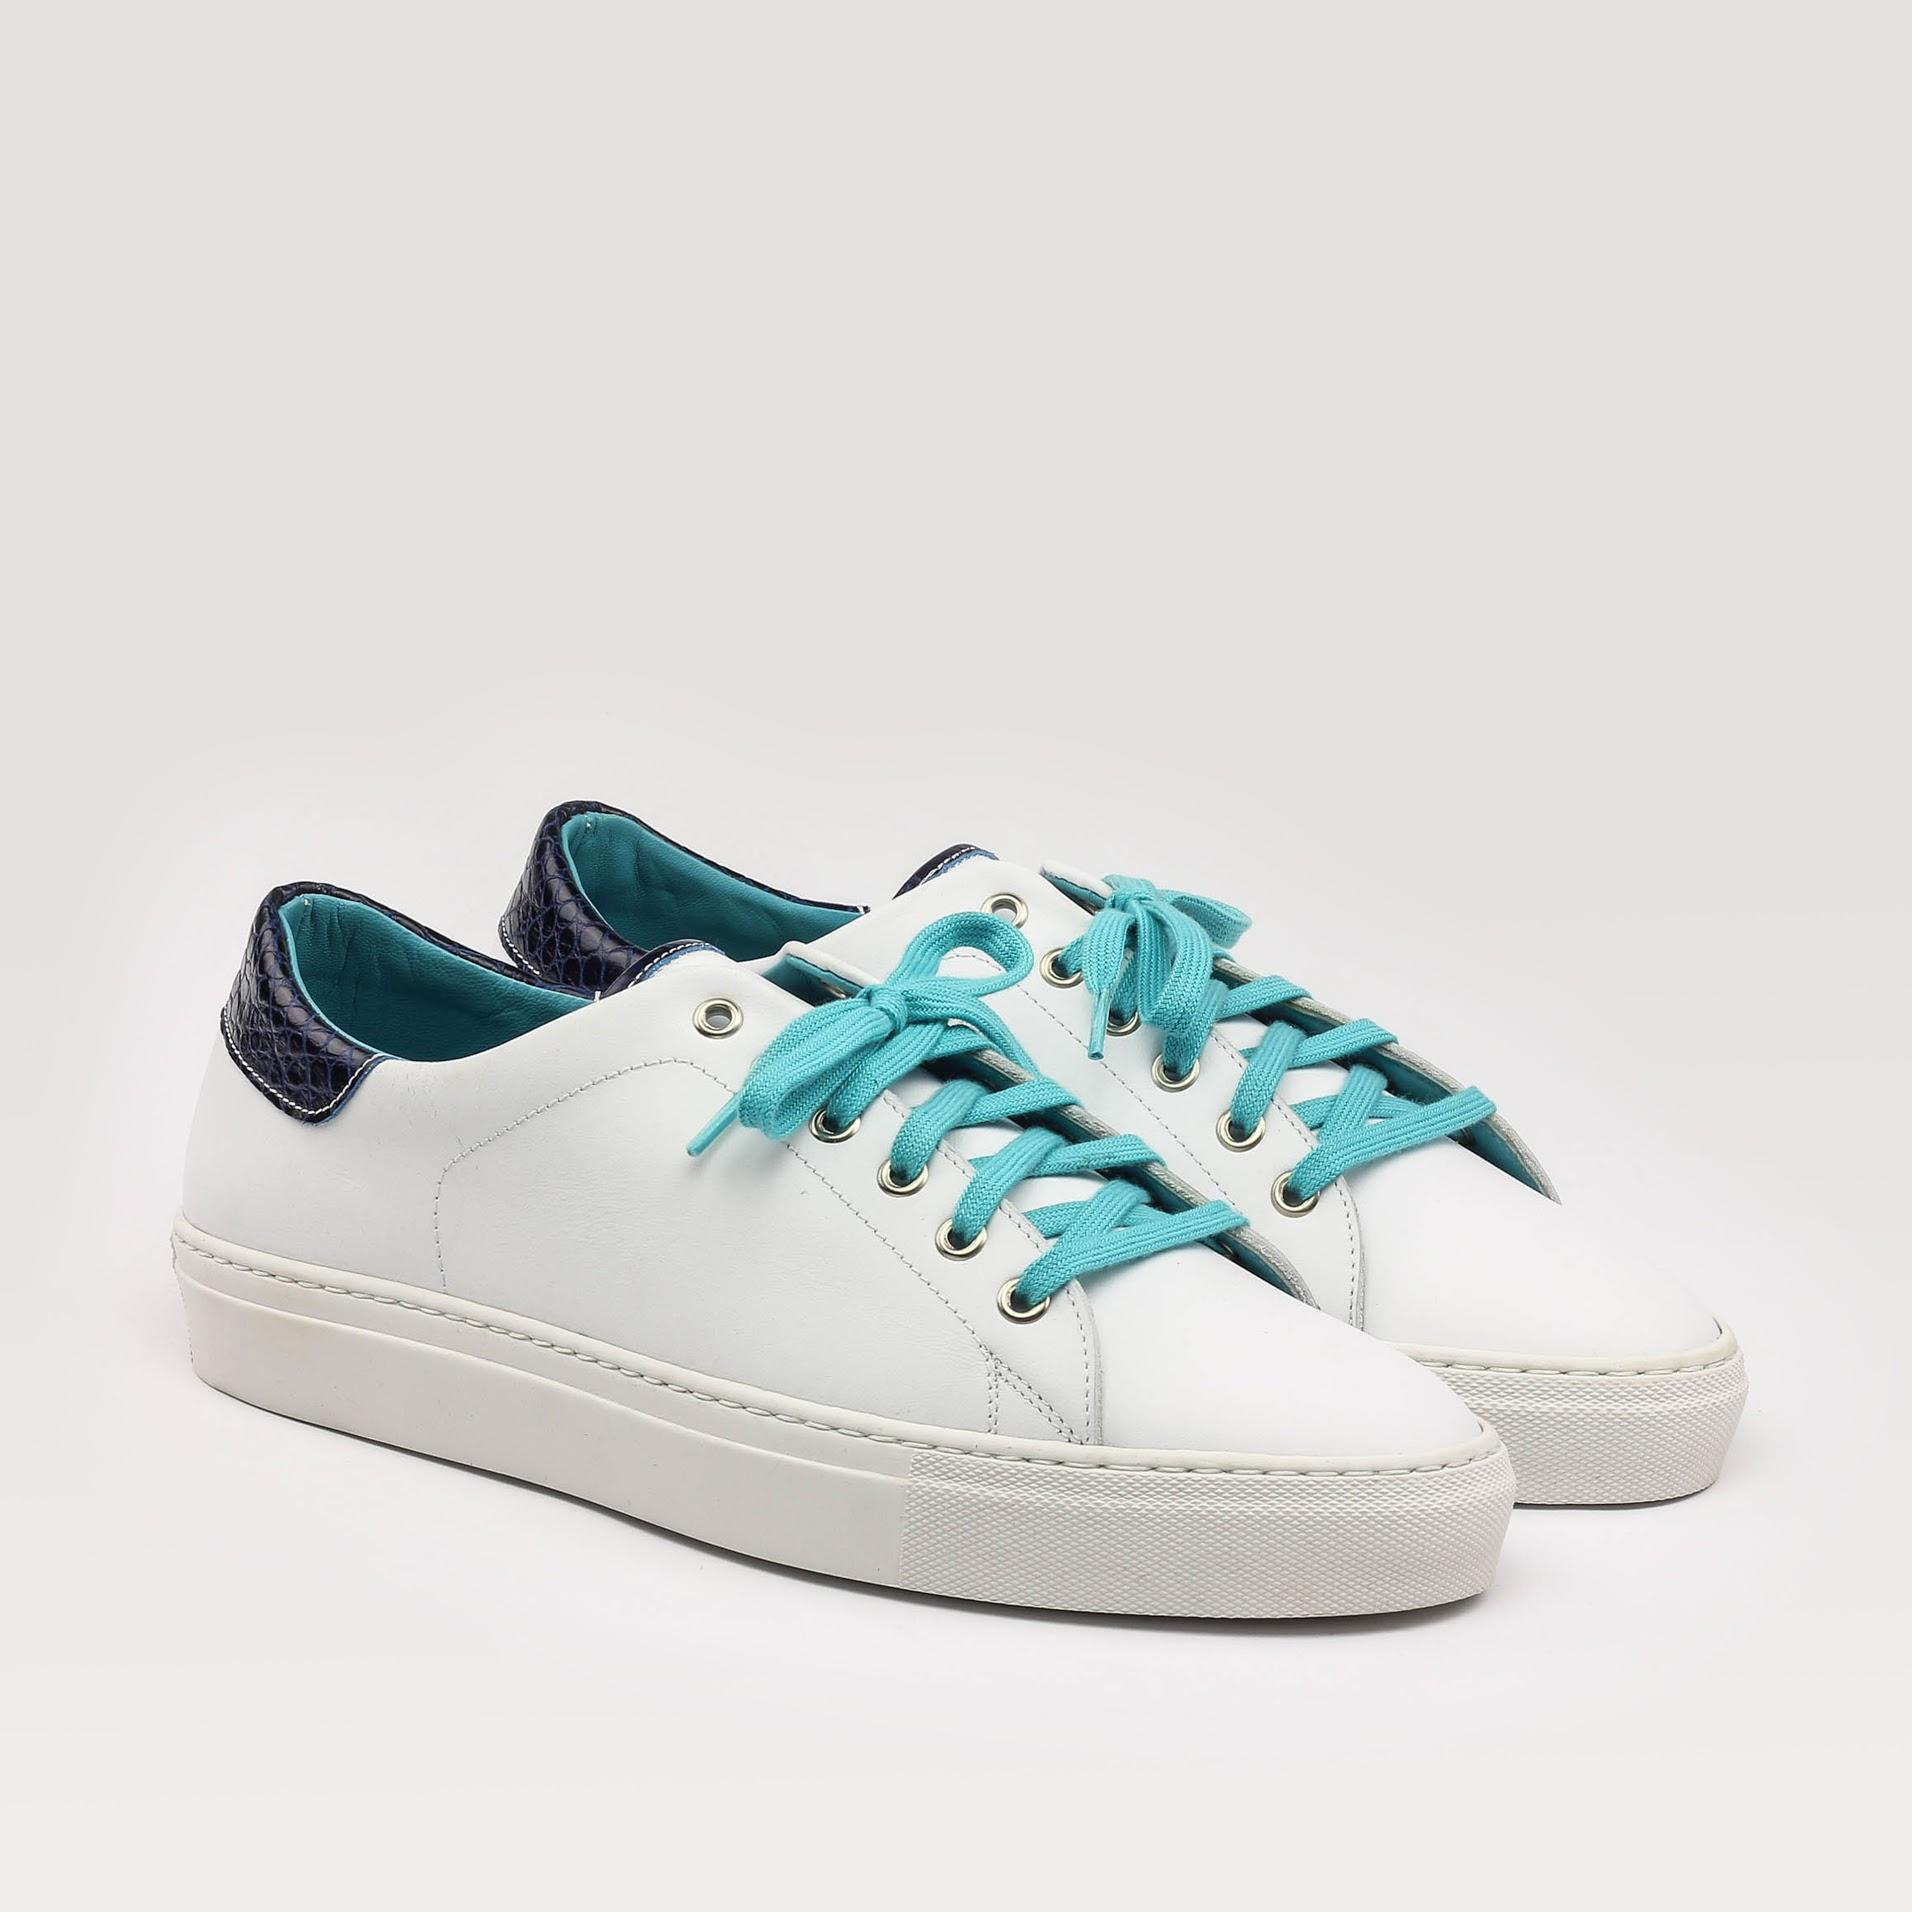 MANOR OF LONDON 'The Perry' White Calfskin & Blue Croco Tennis Trainer Luxury Custom Initials Monogrammed Front Side View